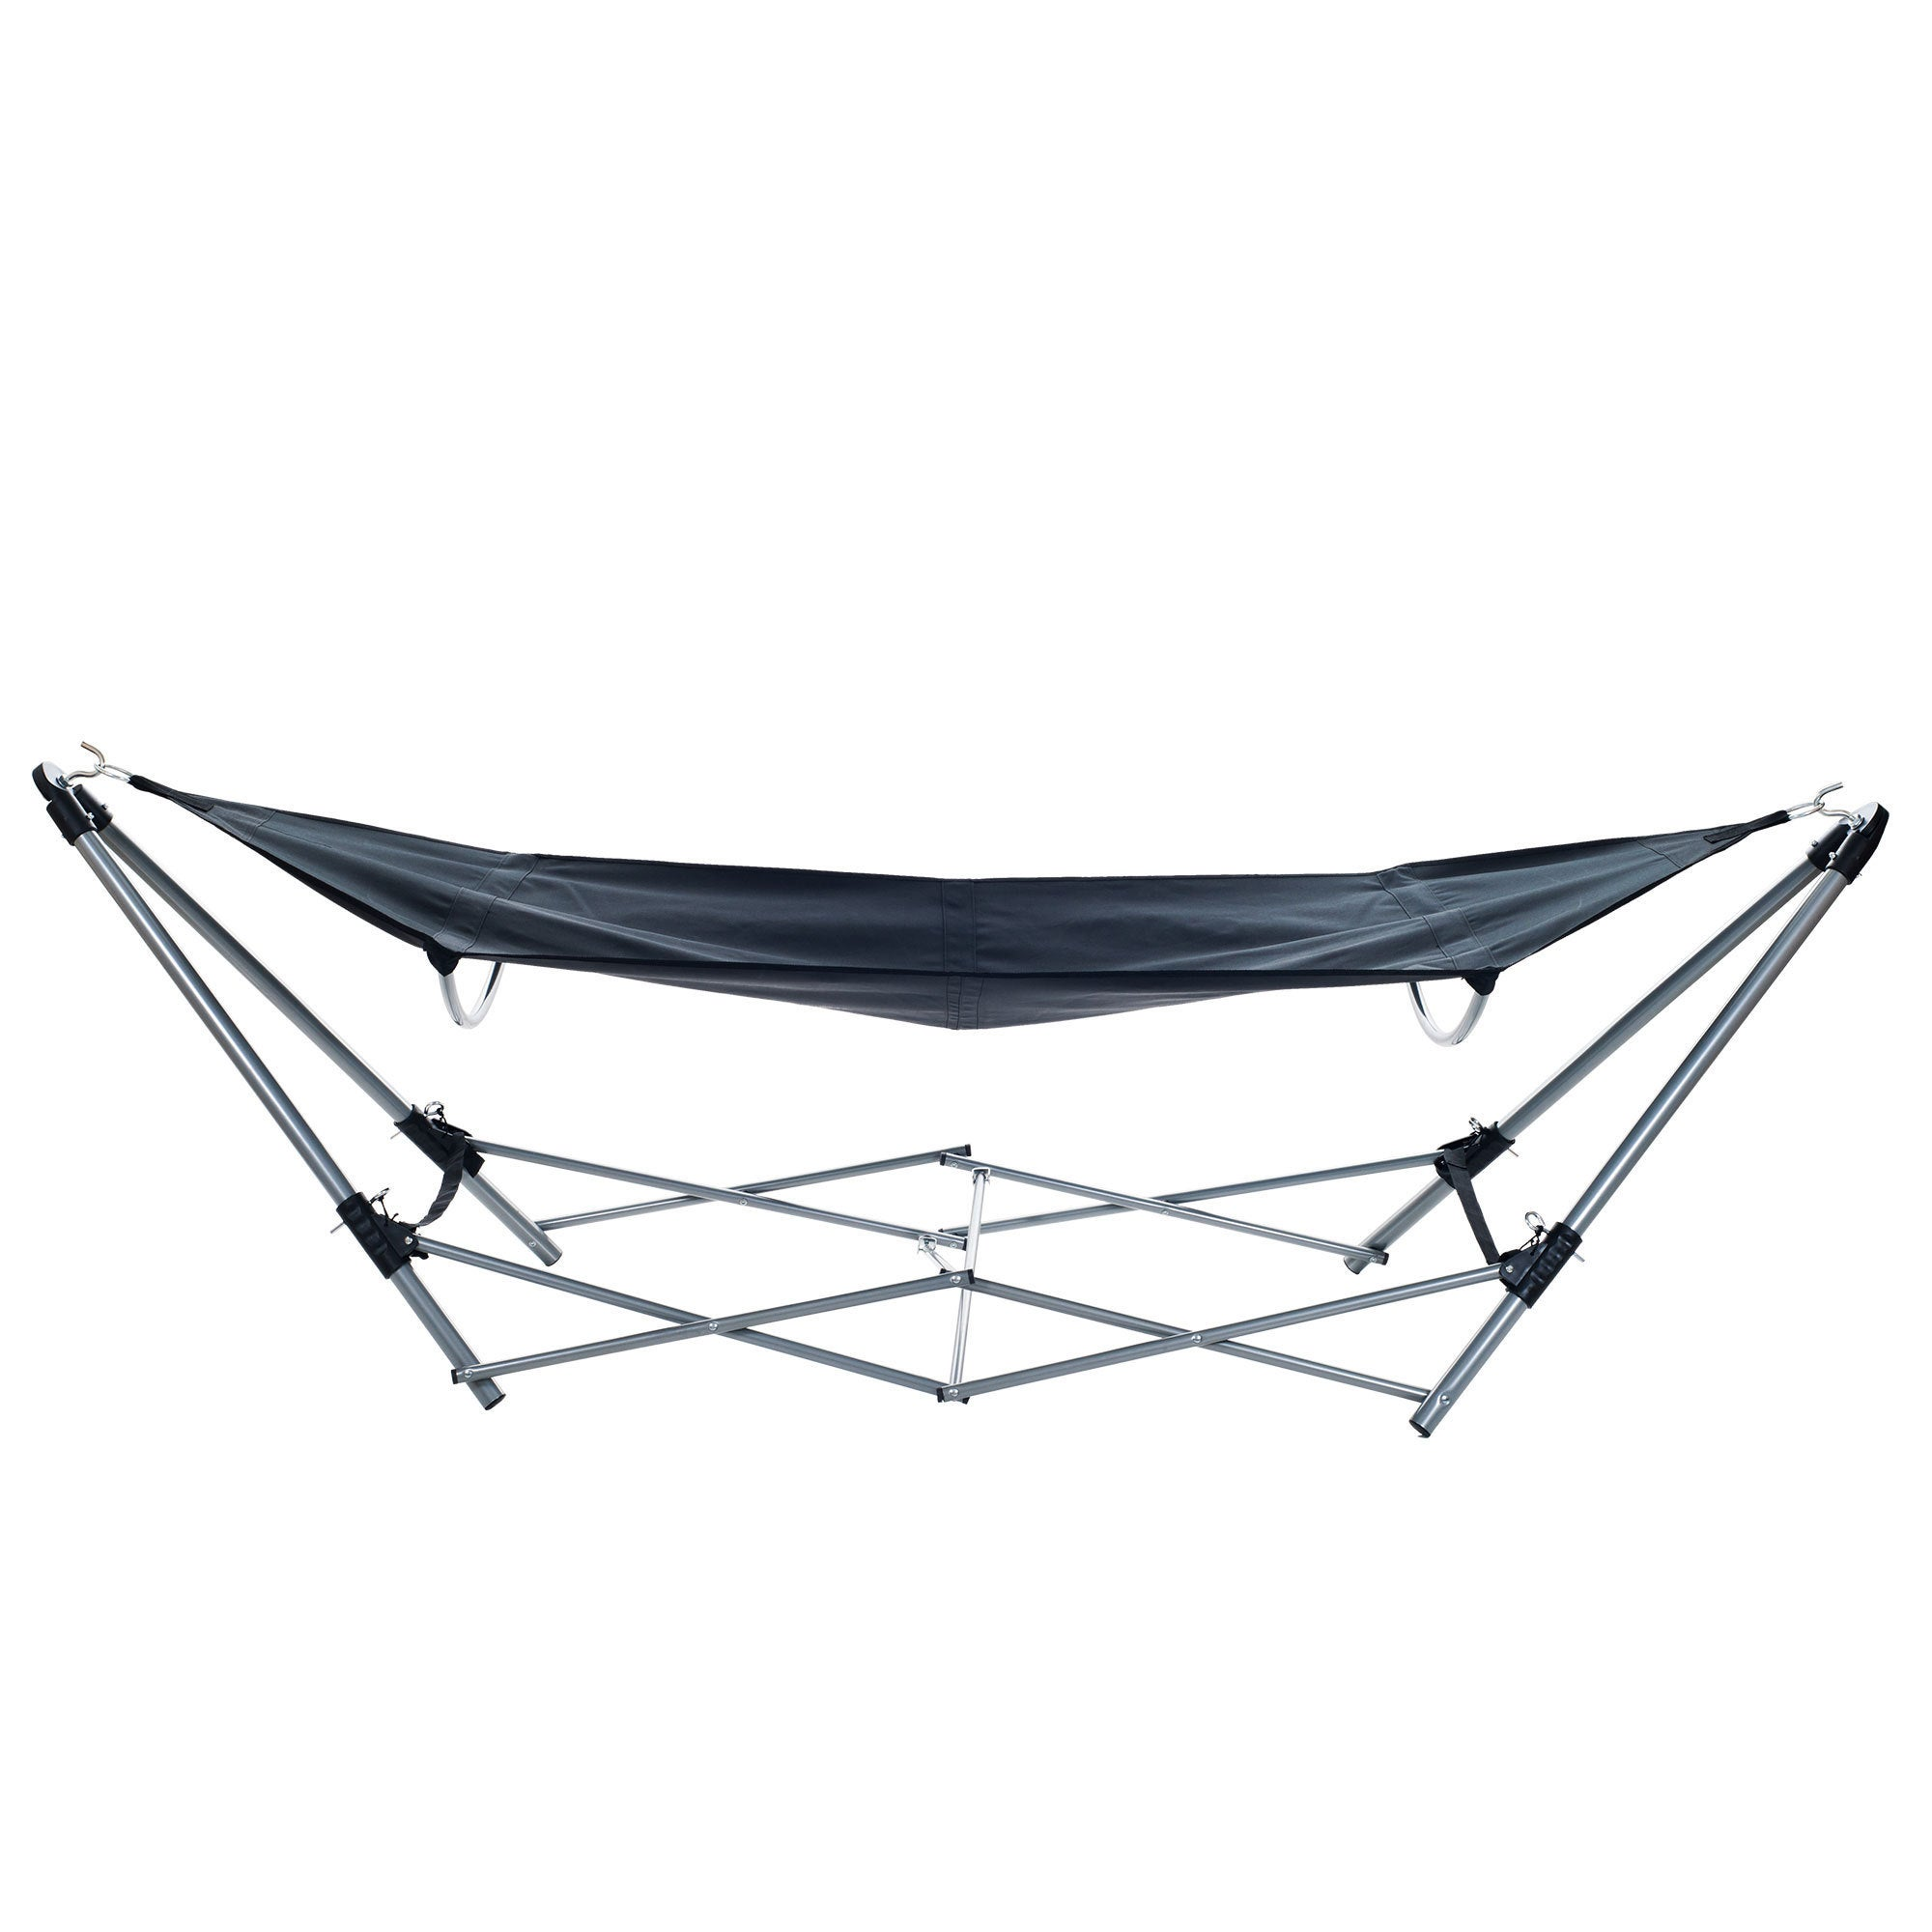 Shop Portable Hammock With Stand Folds And Fits Into Included Carry